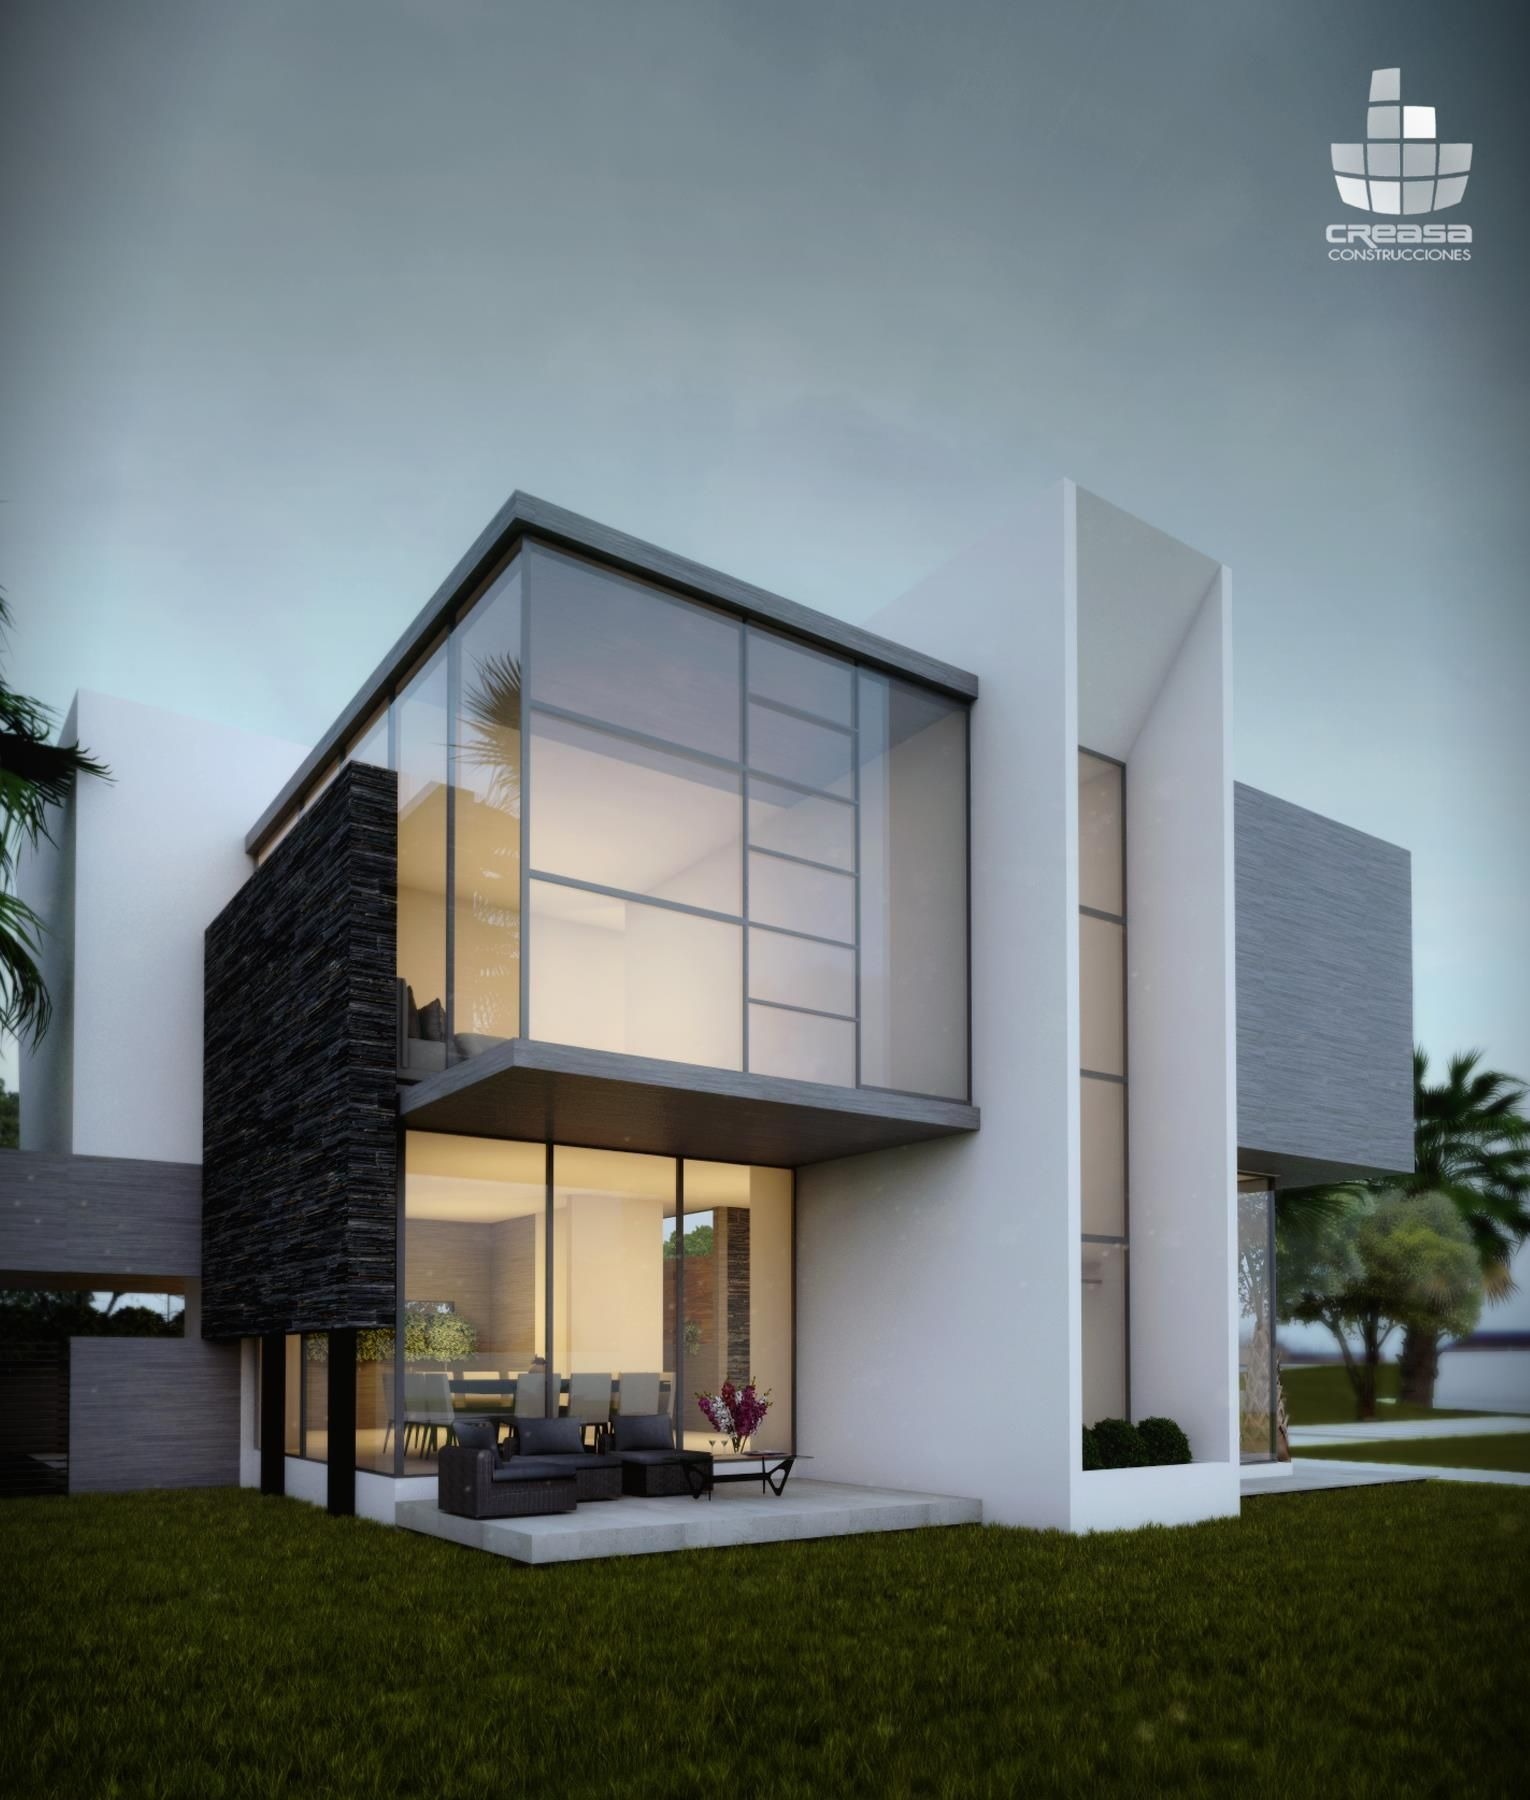 Creasa modern architecture pinterest villas house for Modern box house design